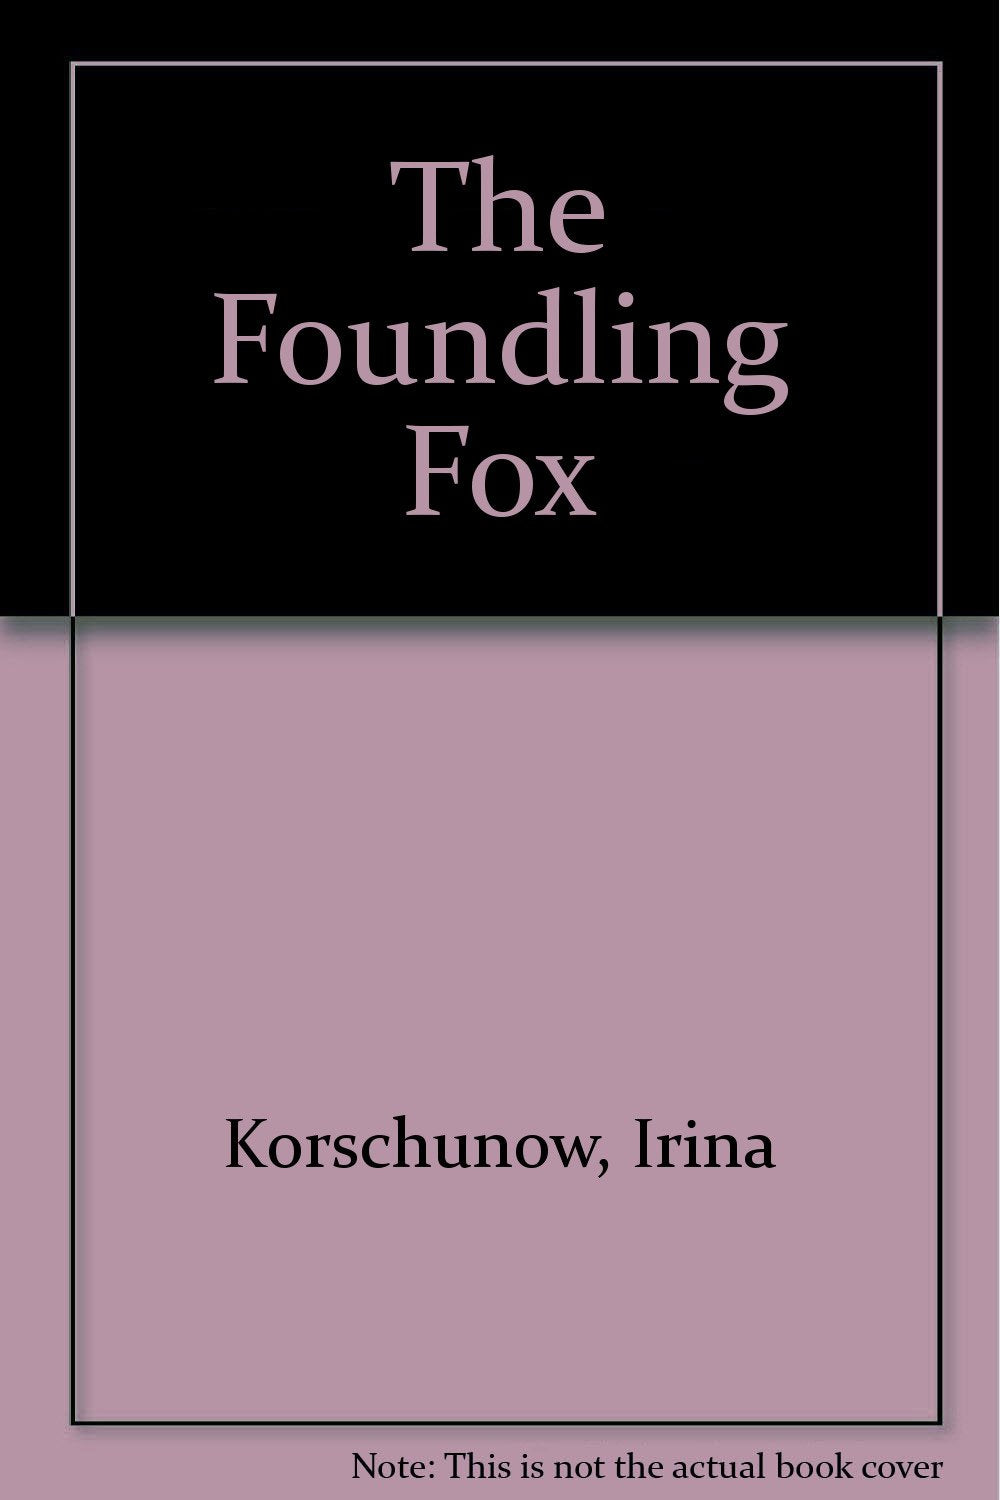 Foundling Fox, The